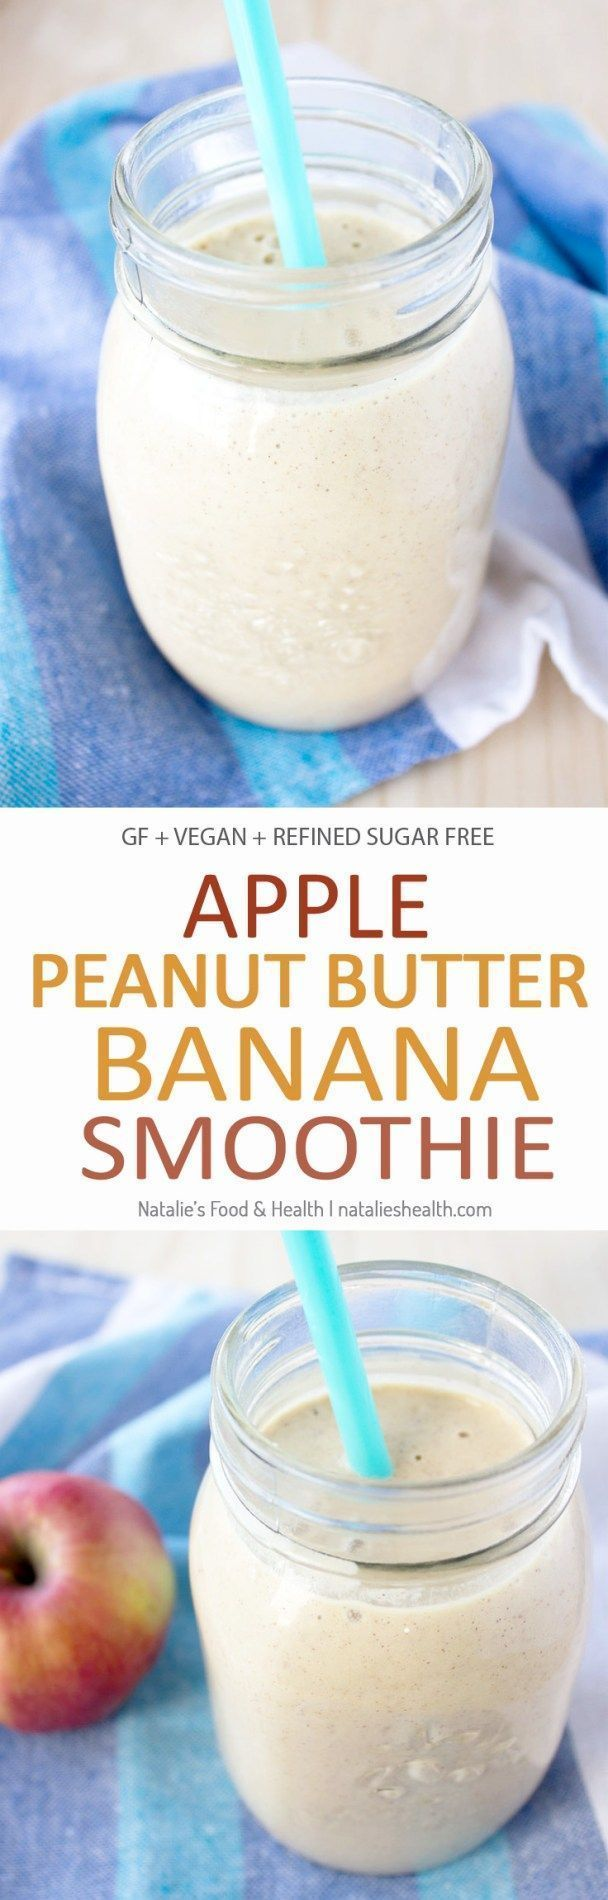 Creamy and full of nutty flavor Apple Peanut Butter Banana Smoothie is the perfect HEALTHY breakfast. It's refined sugar-free, full of fibers and proteins. #vegan #glutenfree #sugarfree #weightloss #breakfast #kidsfriendly #fit #workout #smoothie | natalieshealth.com